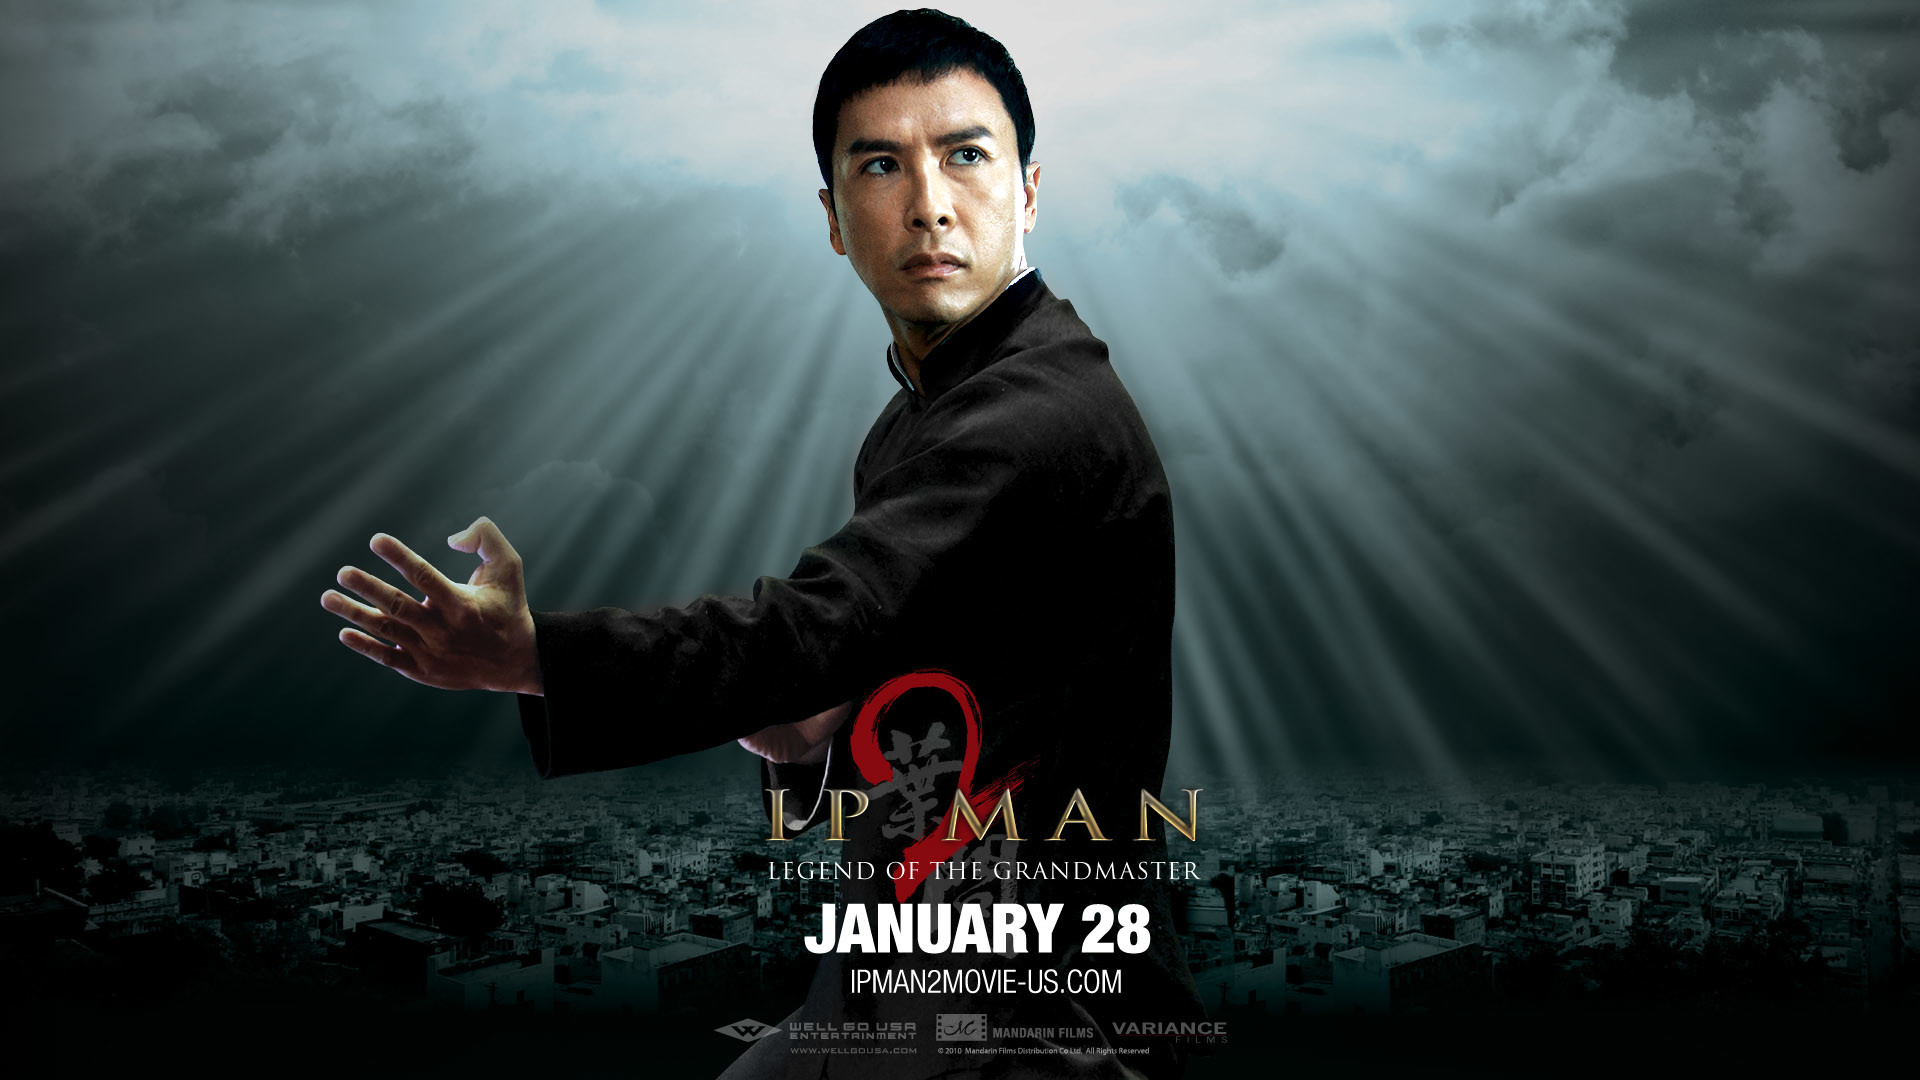 Ip Man Wallpaper HD 82 images 1920x1080